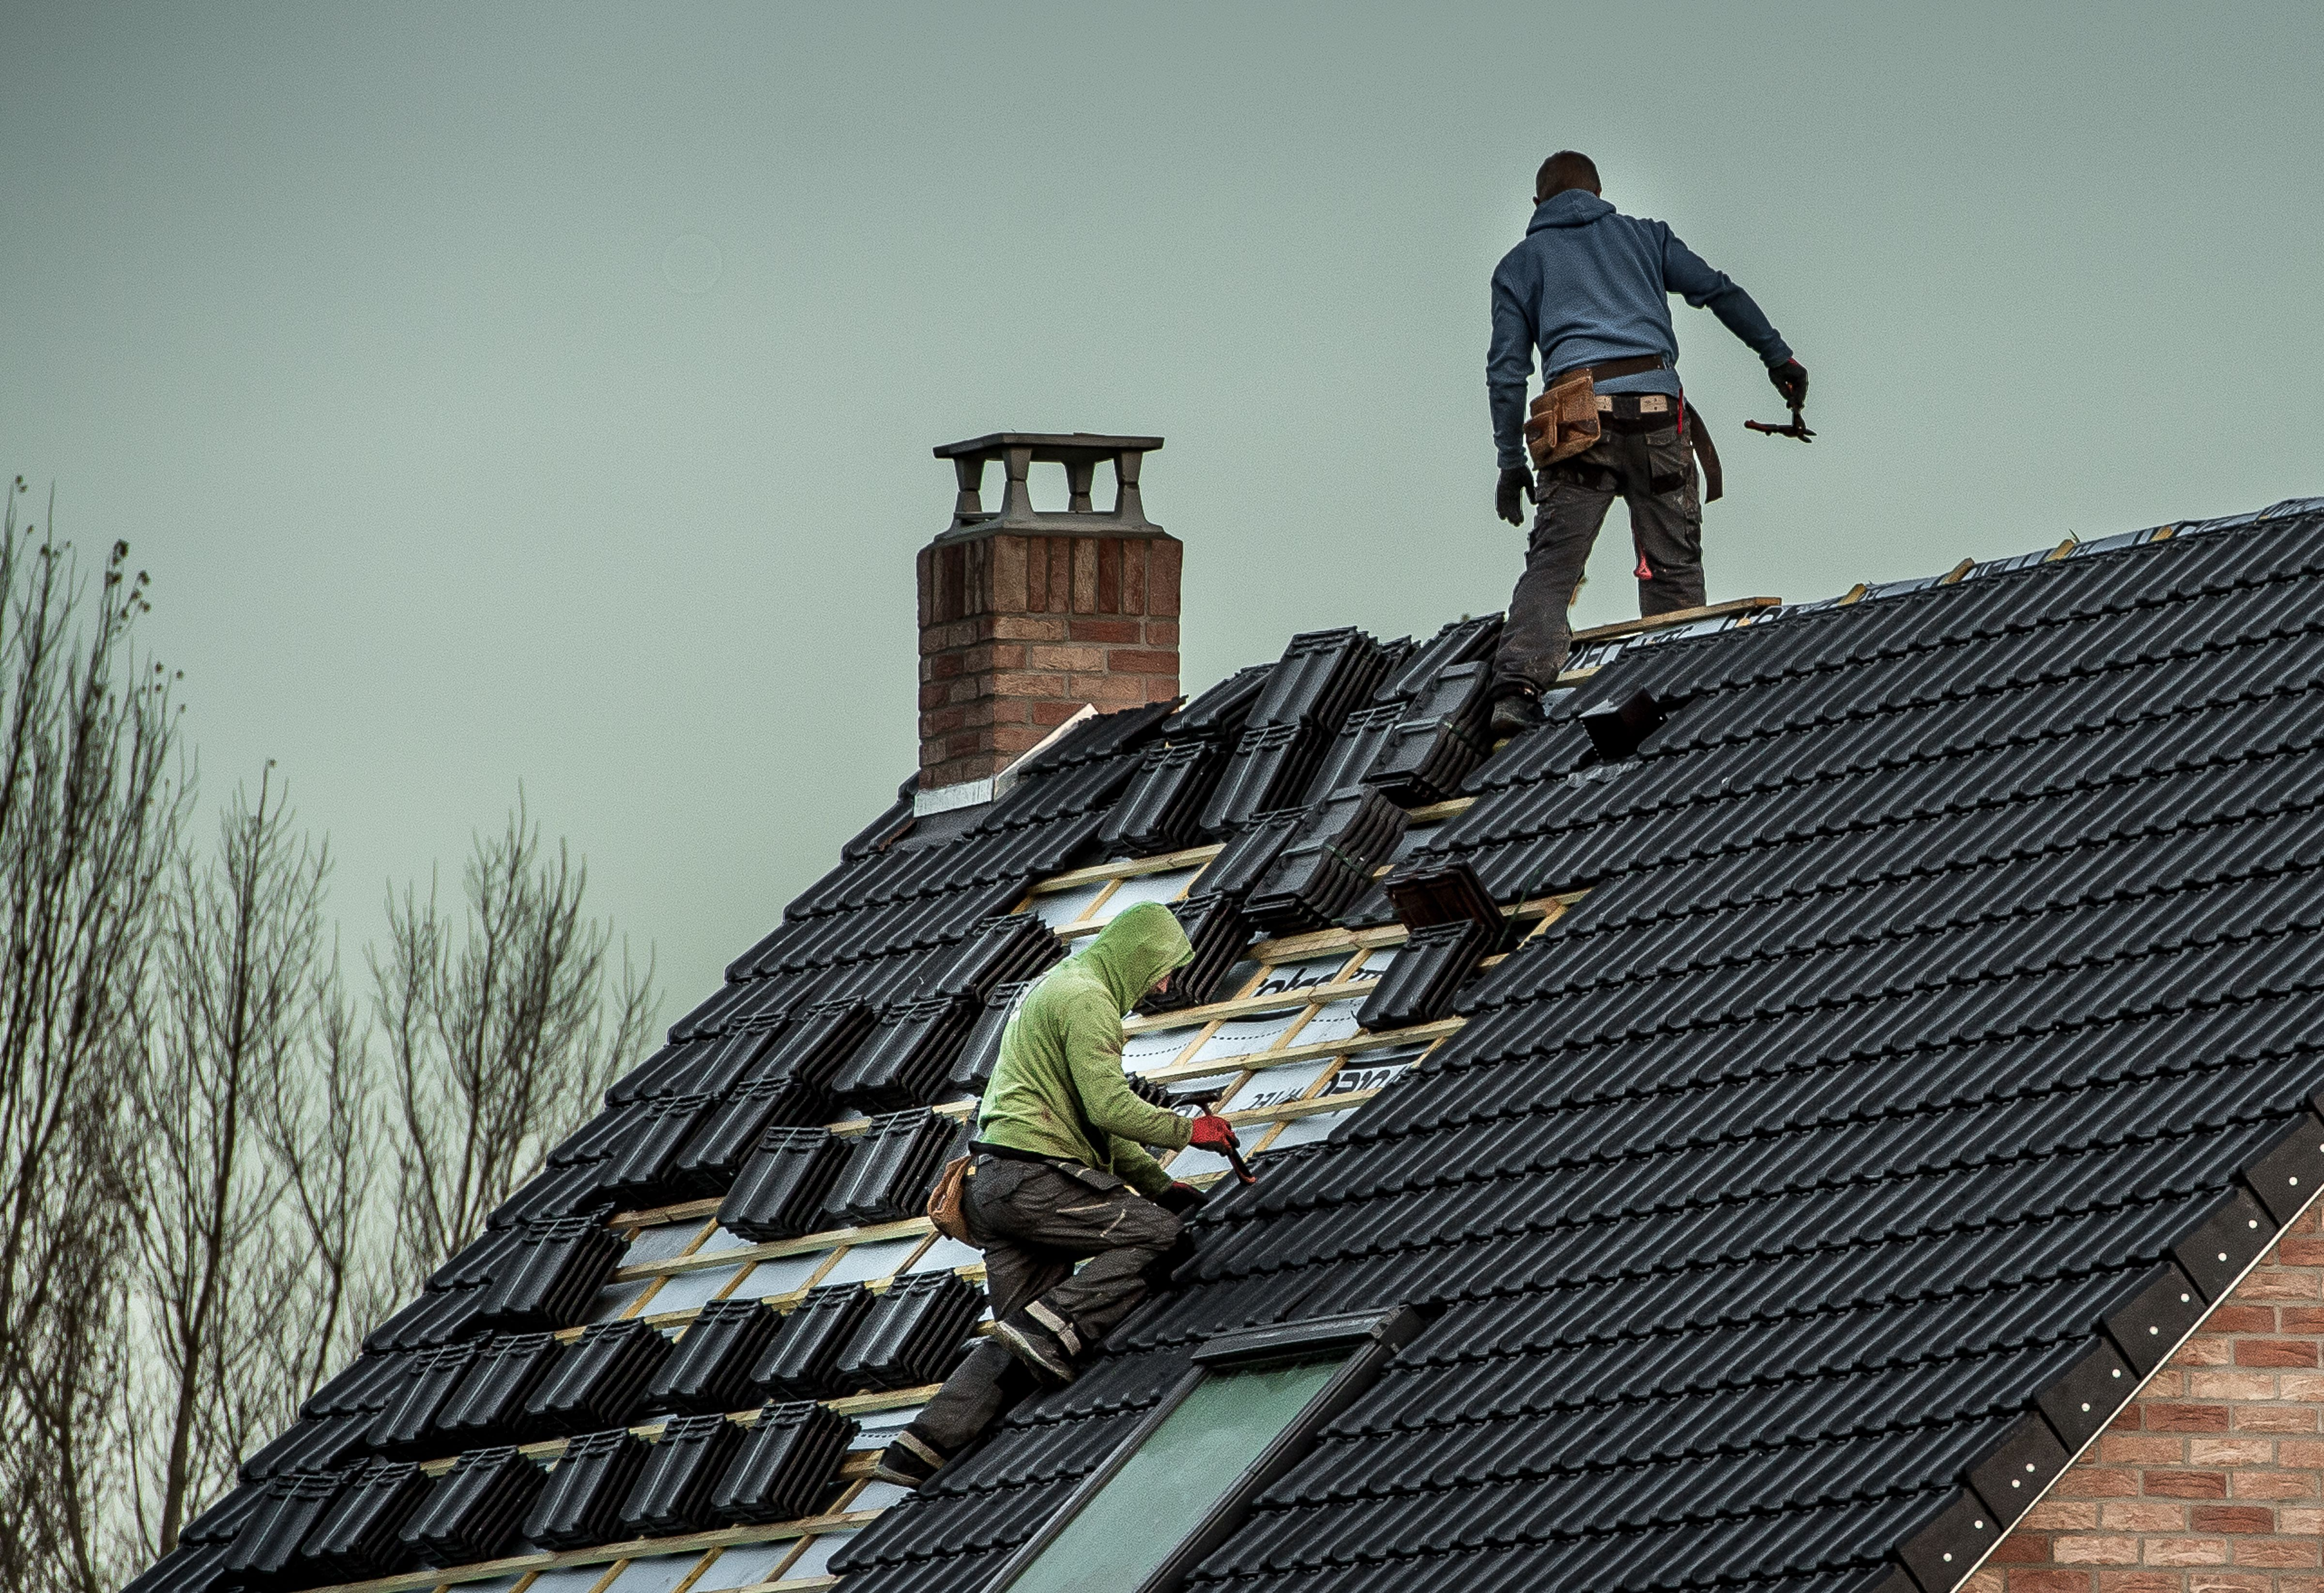 4. Roofers